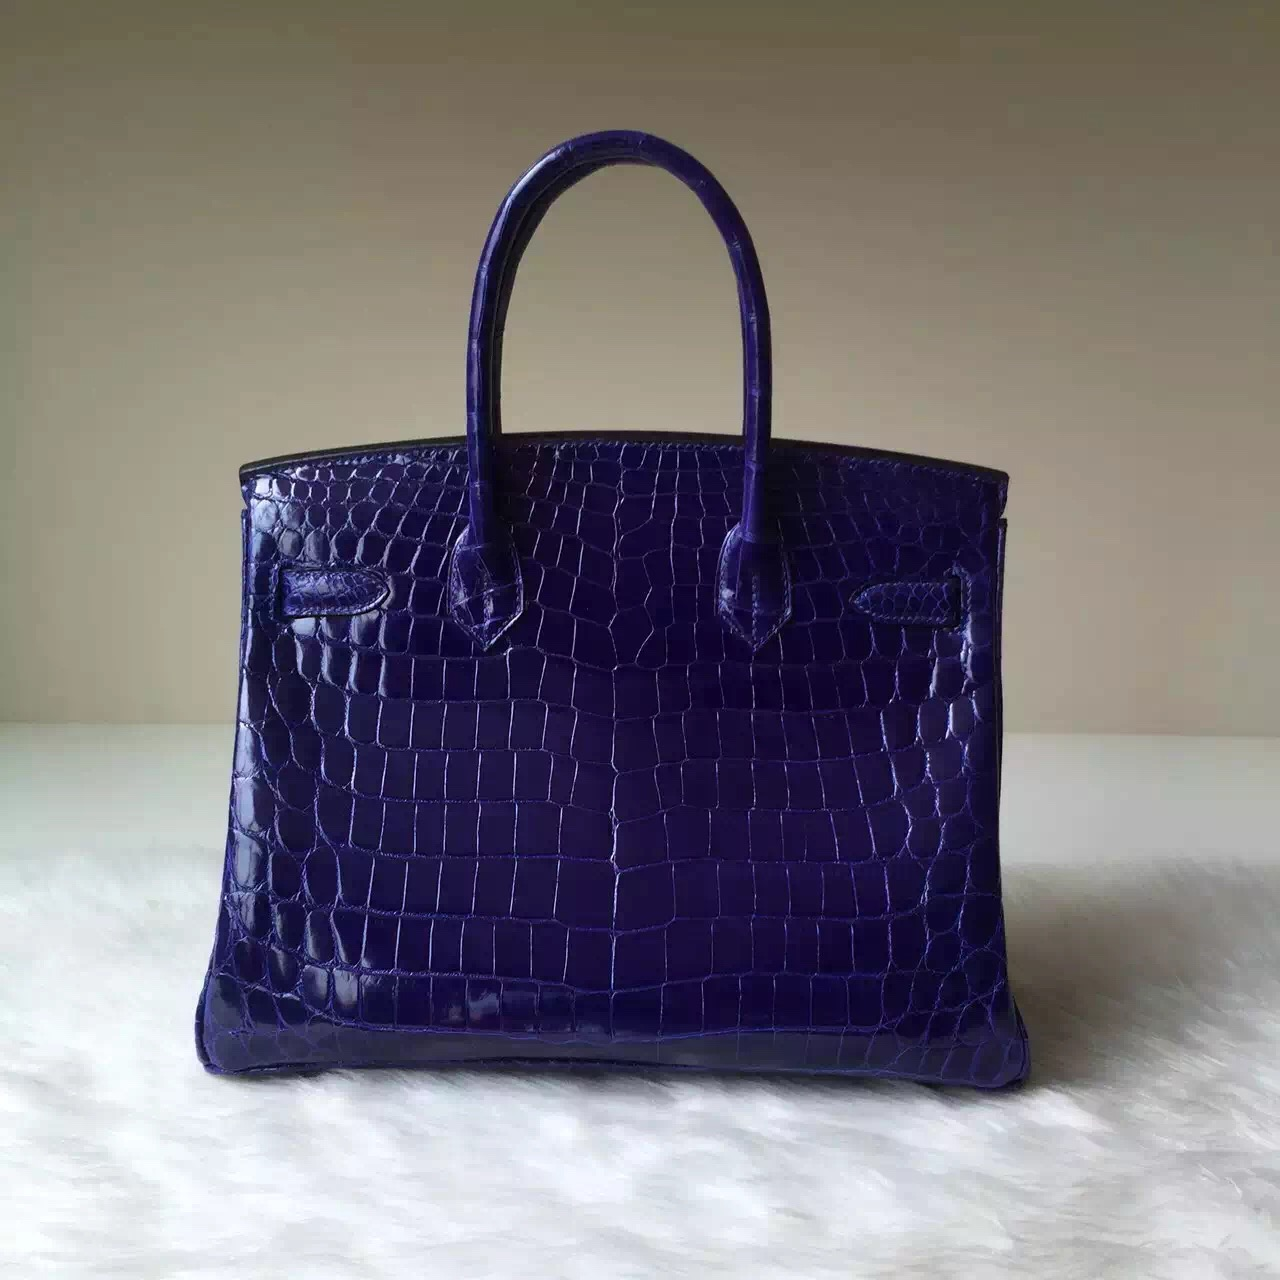 Wholesale Hermes Crocodile Shiny Leather Birkin30 in 7T Blue Electric